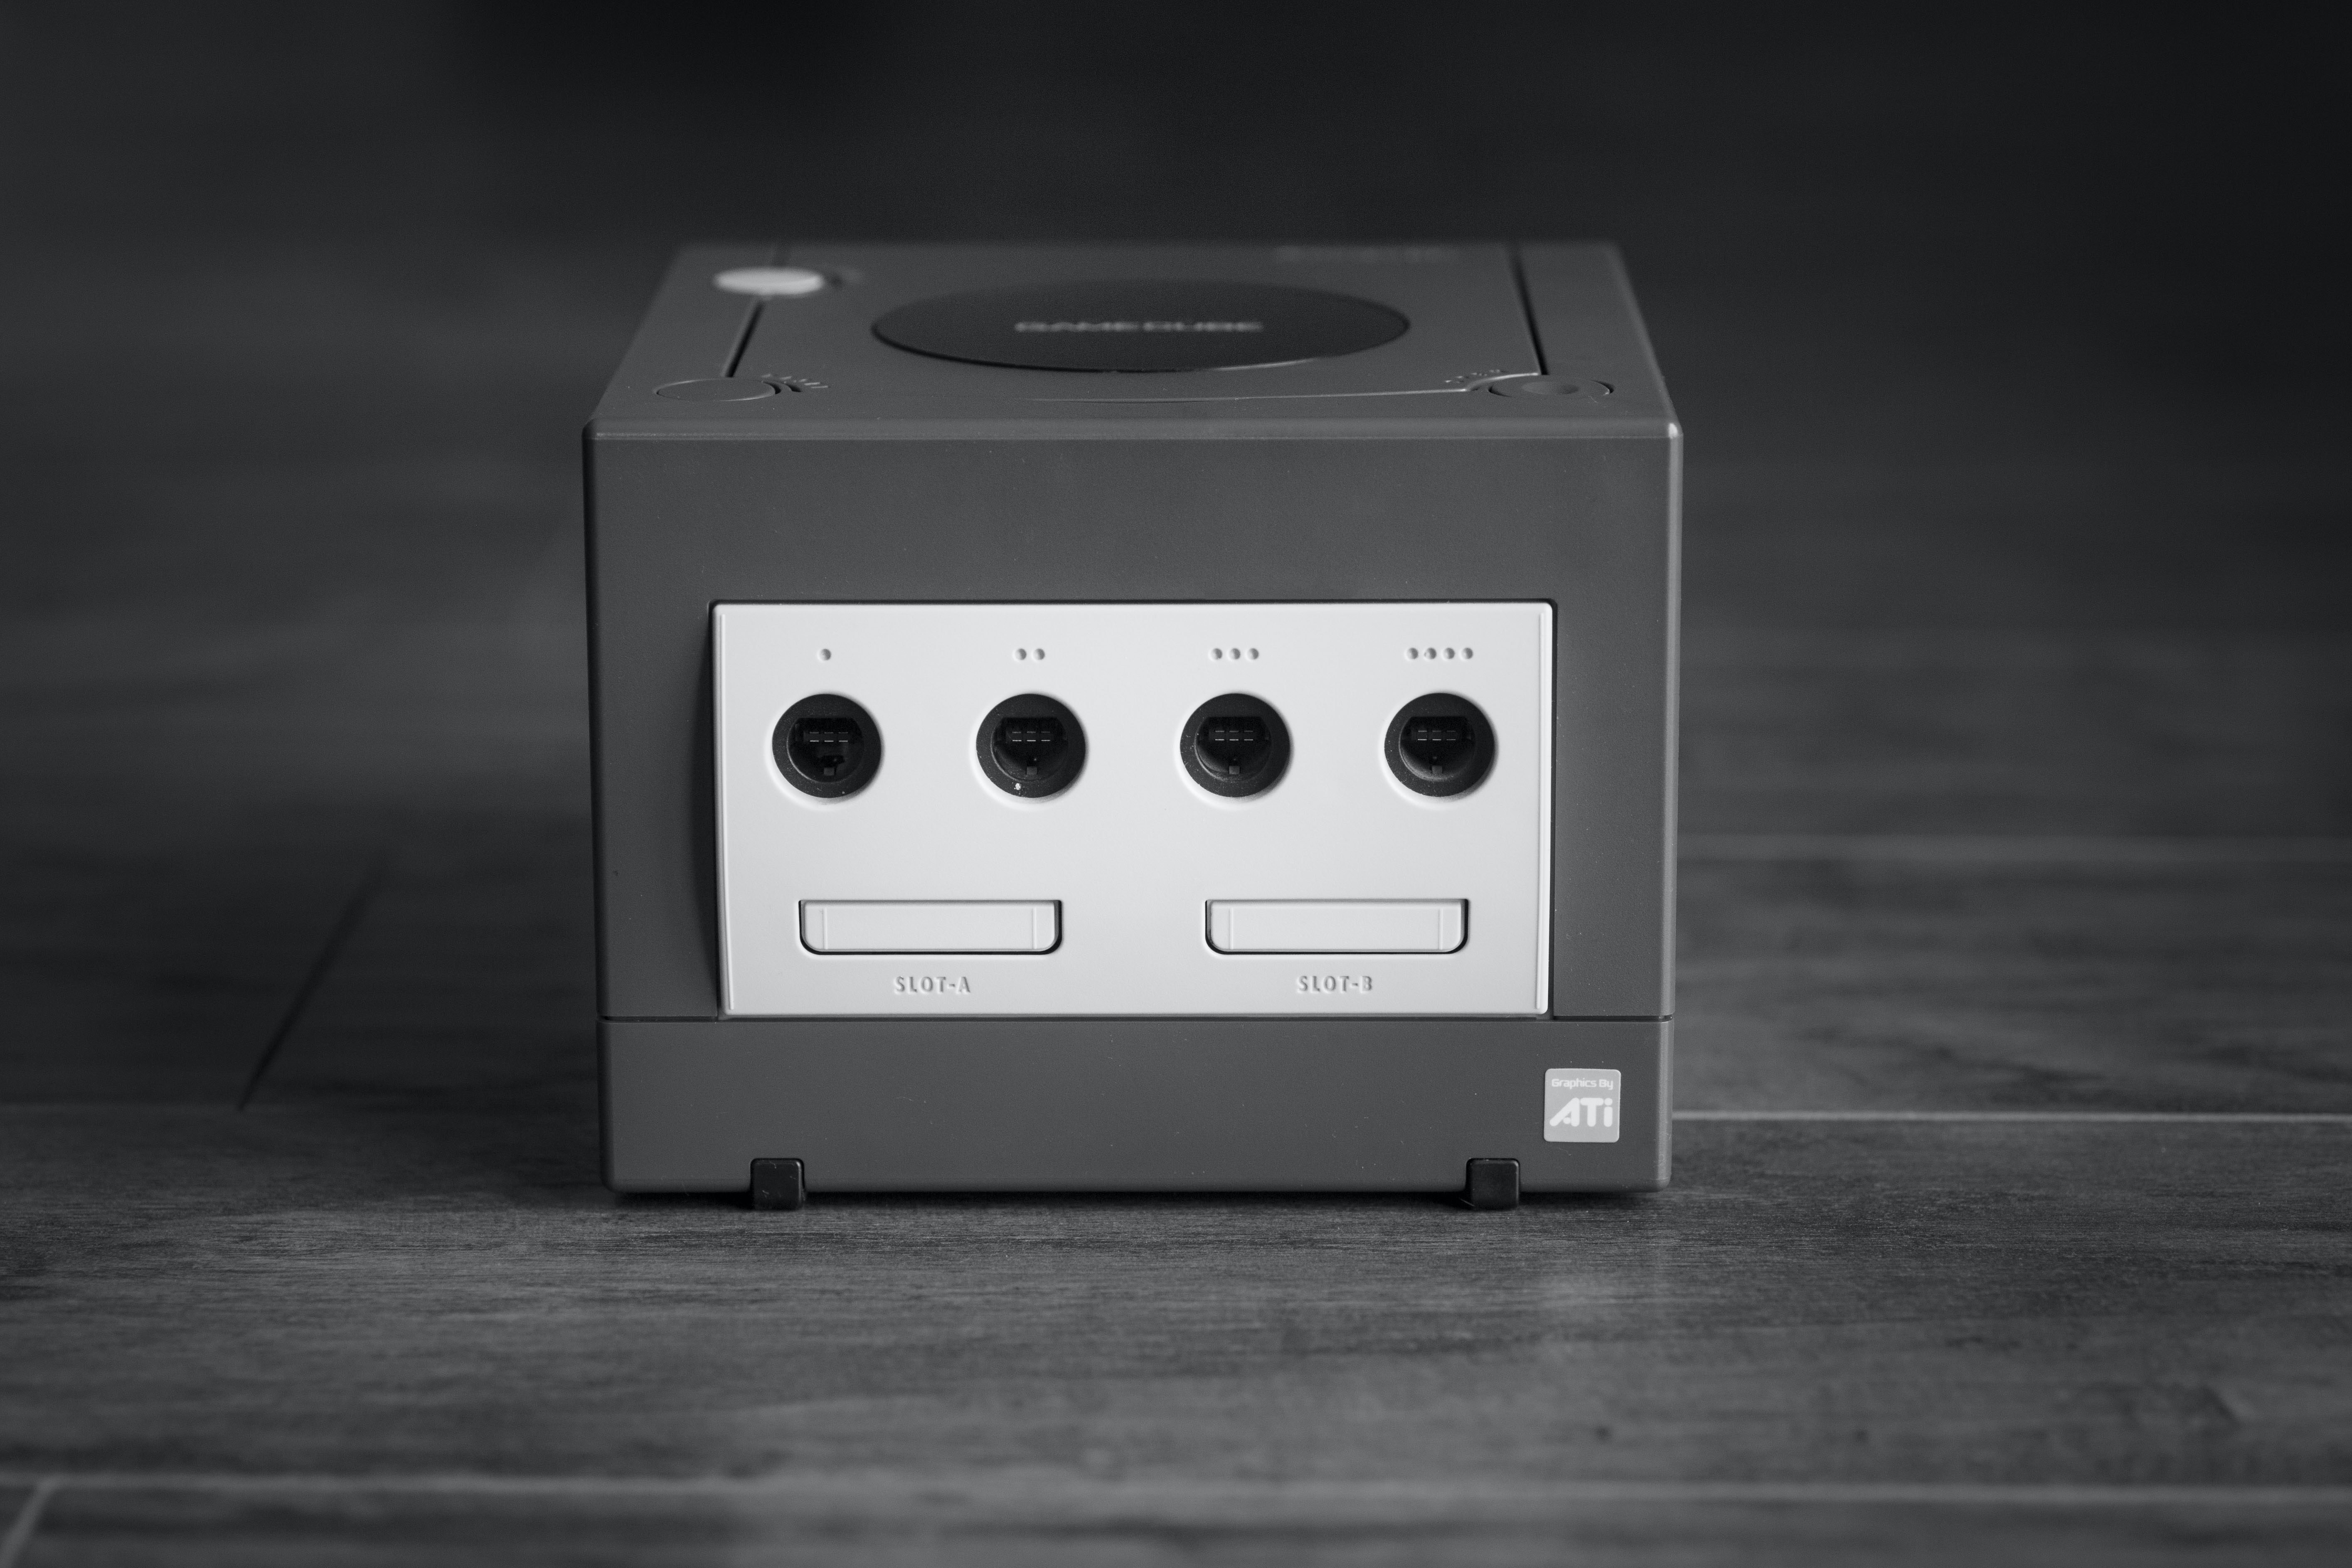 Black and white front of Gamecube gaming system with inputs and buttons